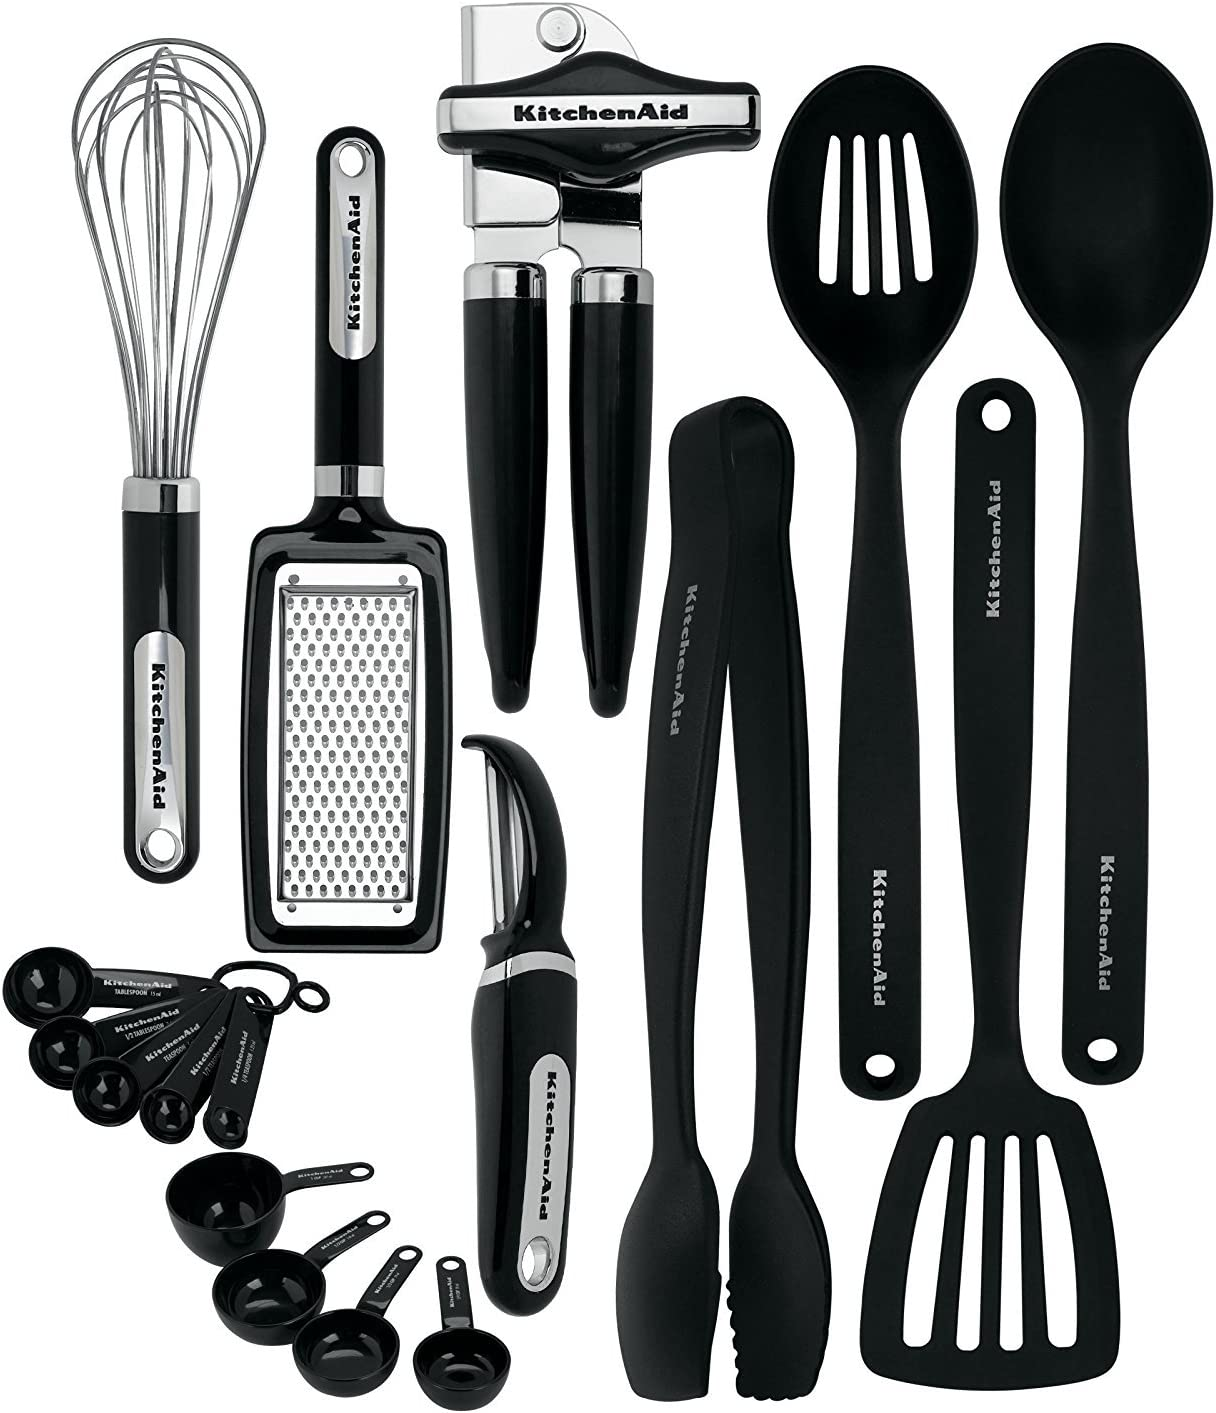 KitchenAid Kitchen Tools at Lowes.com